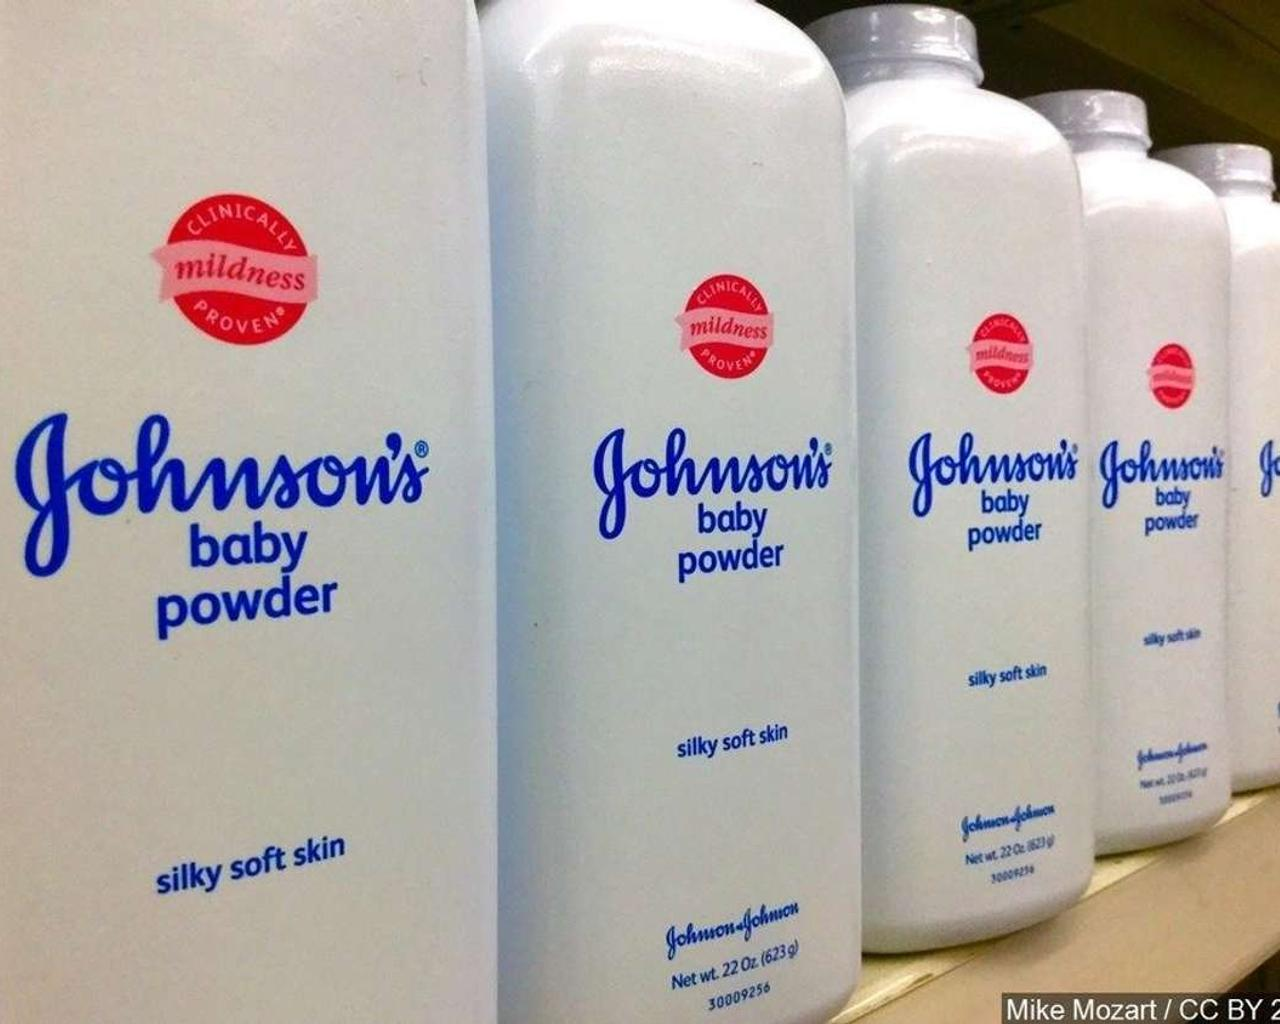 Johnson and Johnson Under Investigation For Their Baby Powder—May Contain Cancer-Causing Asbestos